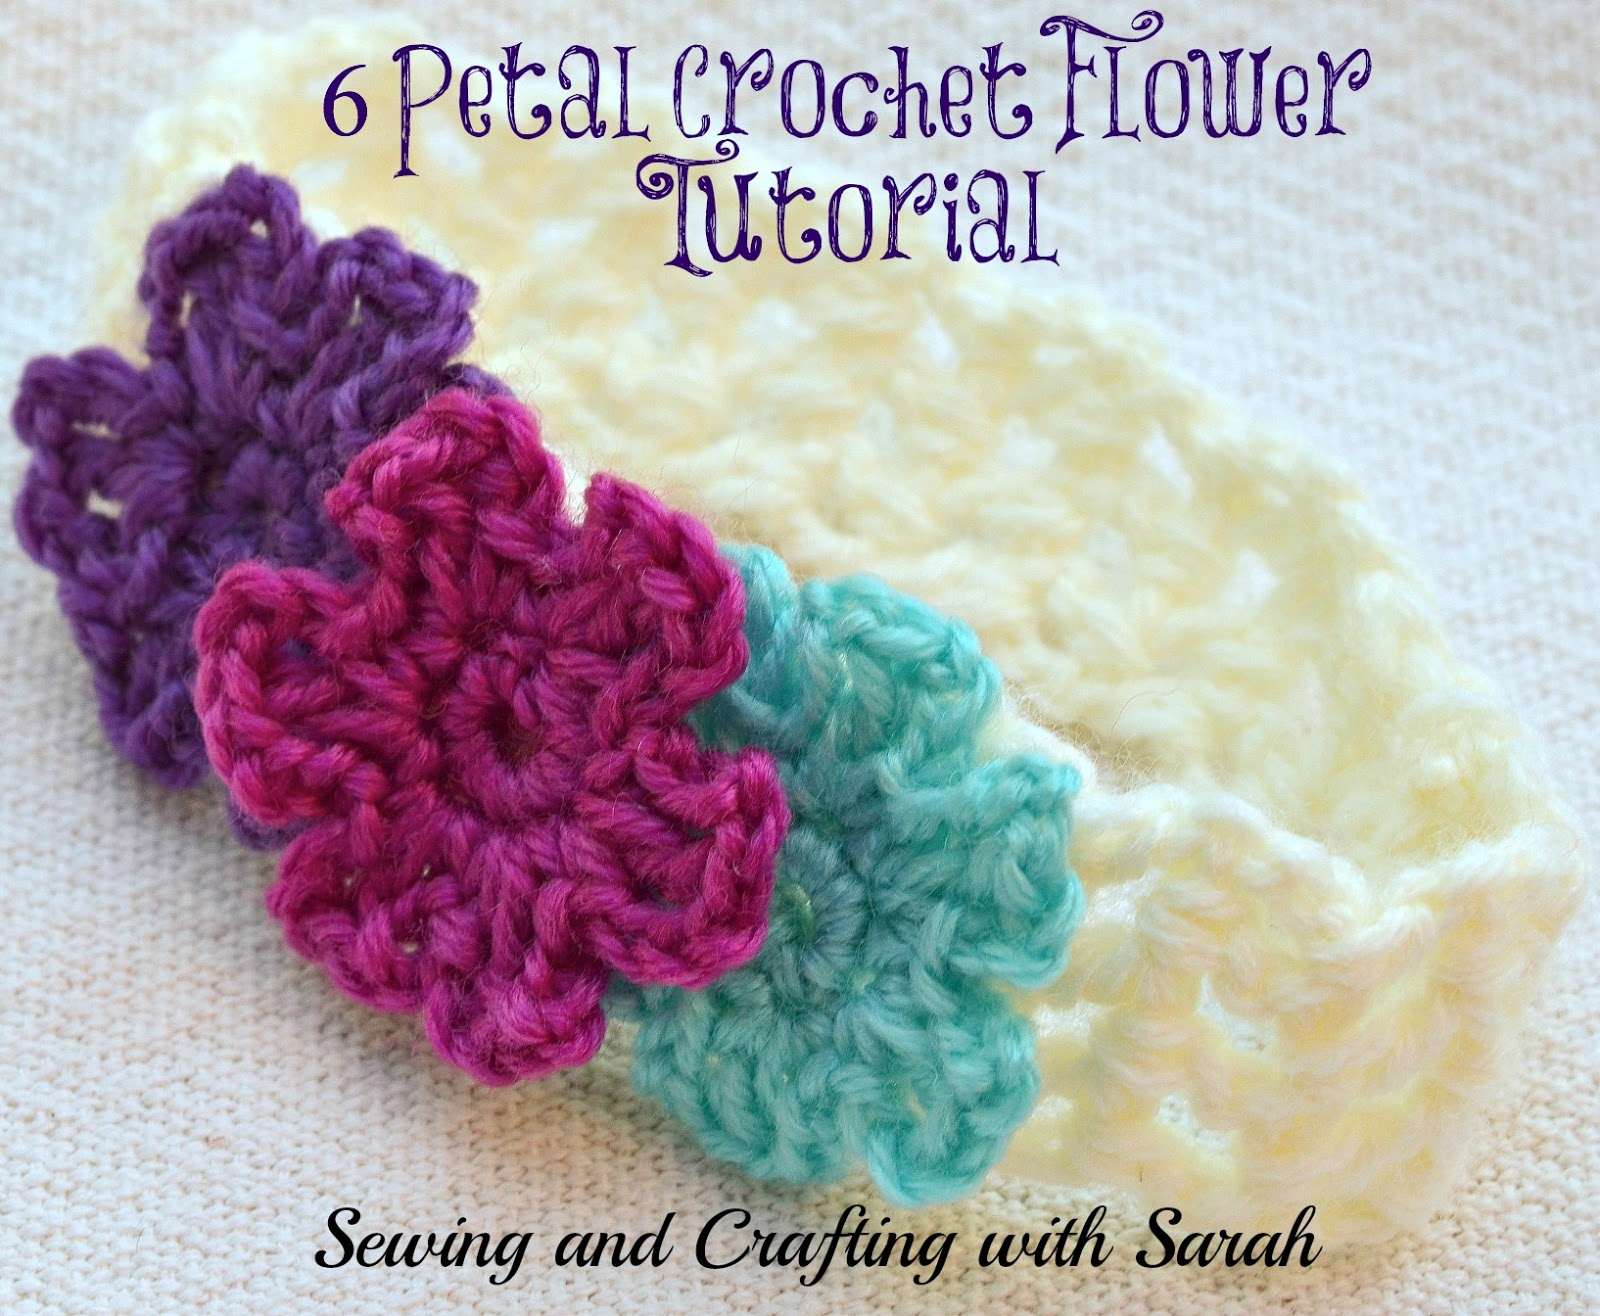 Crochet Simple Flower Tutorial : Sewing and Crafting with Sarah: 6 Petal Crochet Flower ...